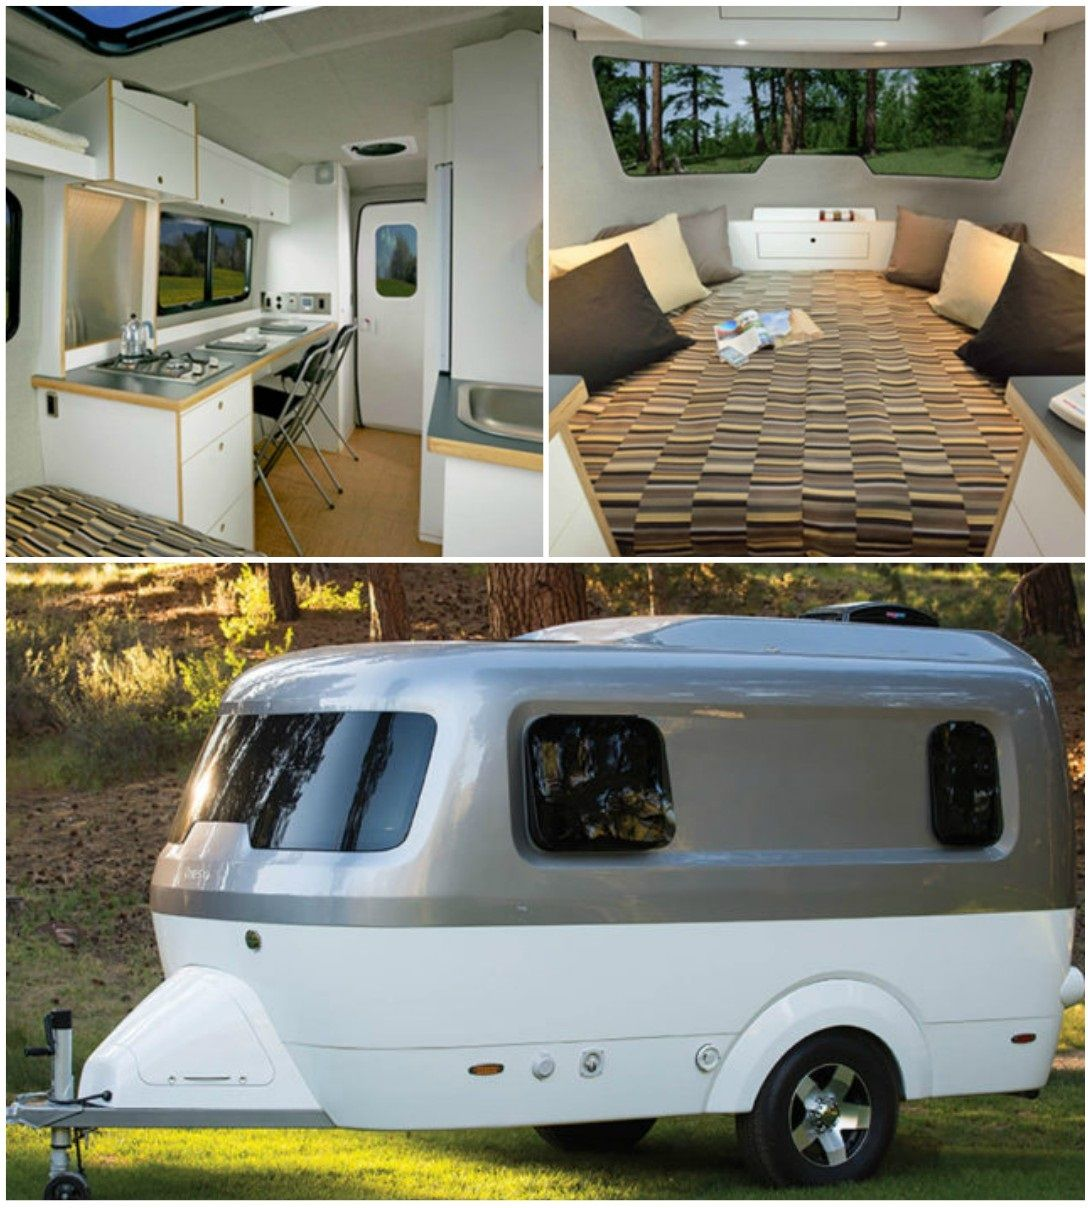 Travel Trailers With Outdoor Kitchens: Want To Tow A Light RV Behind Your SUV Or Other Small